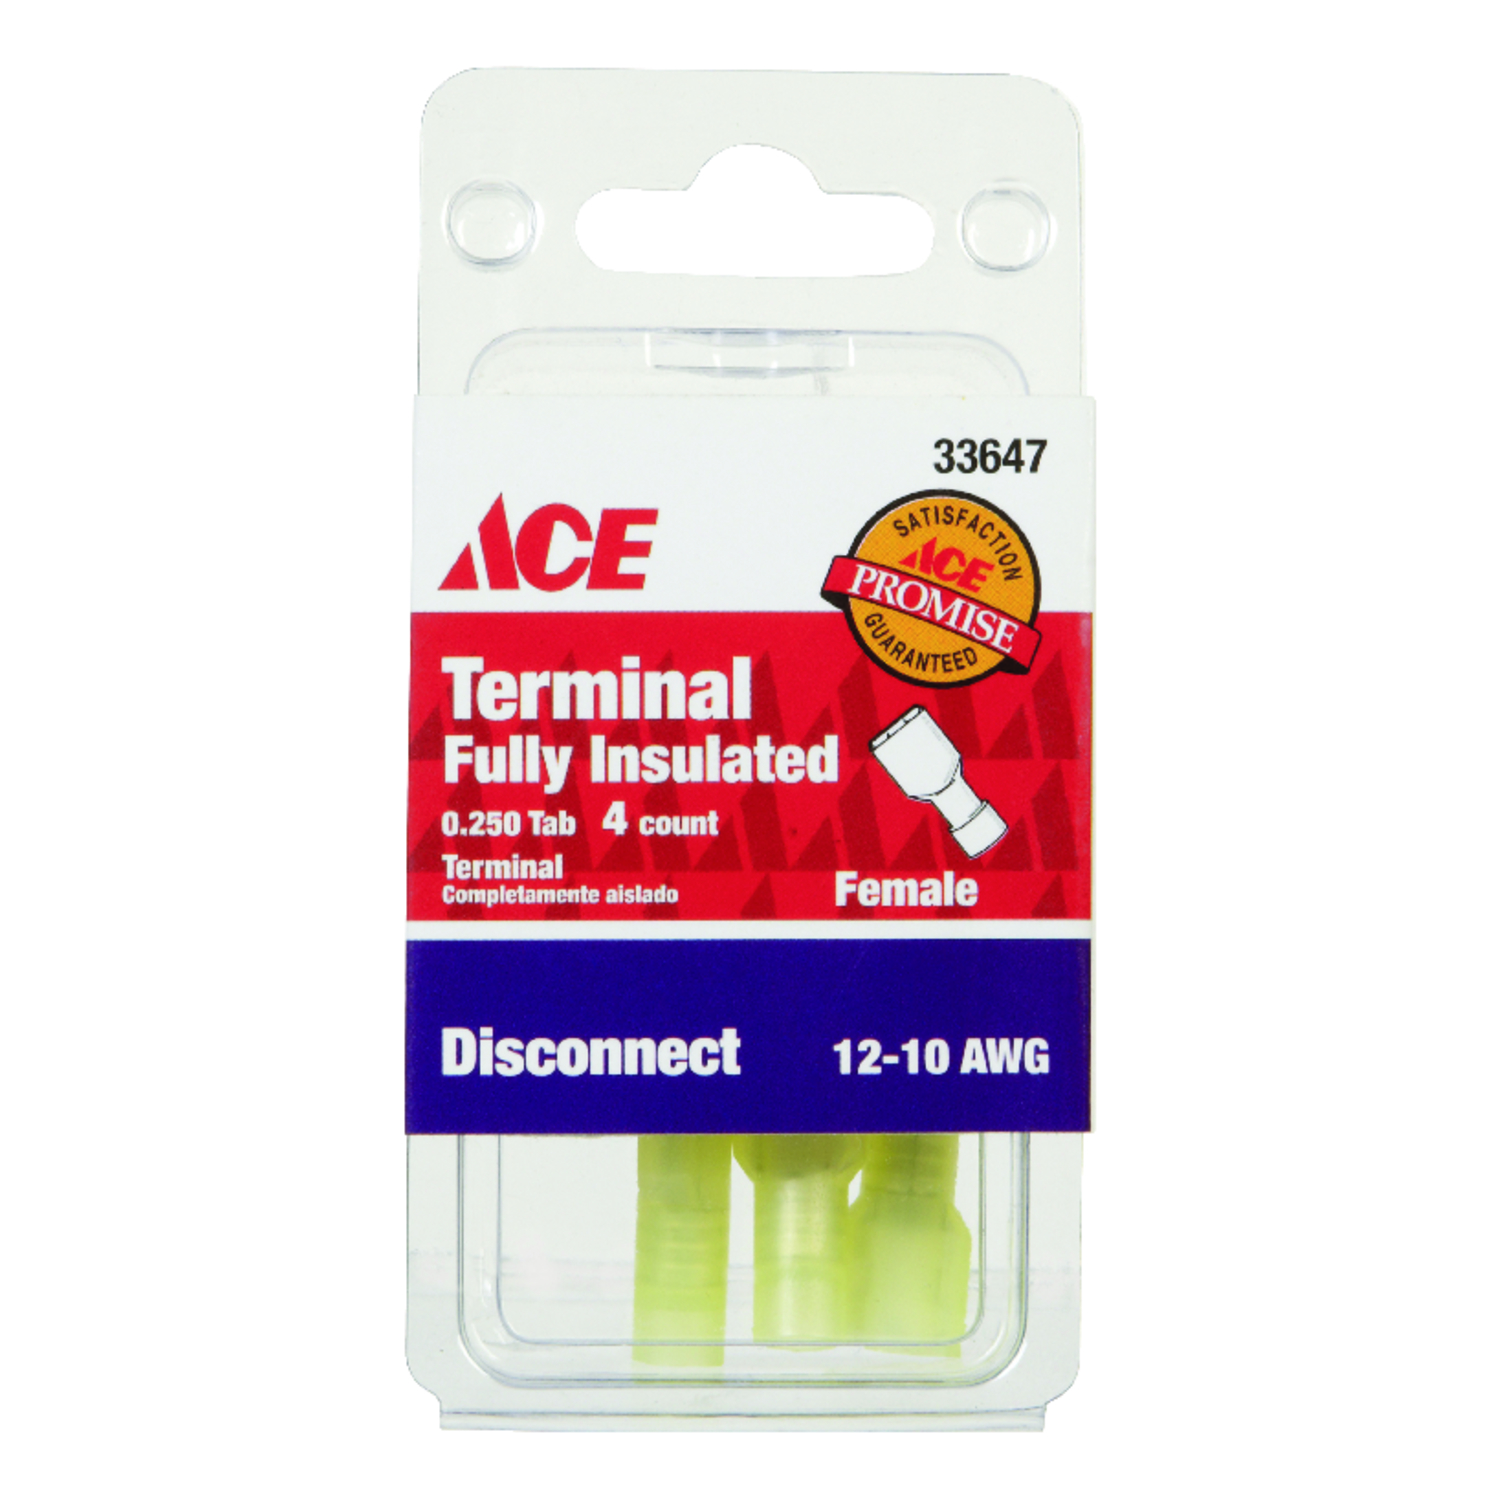 Ace  Insulated Wire  Female Disconnect  4  12-10 AWG